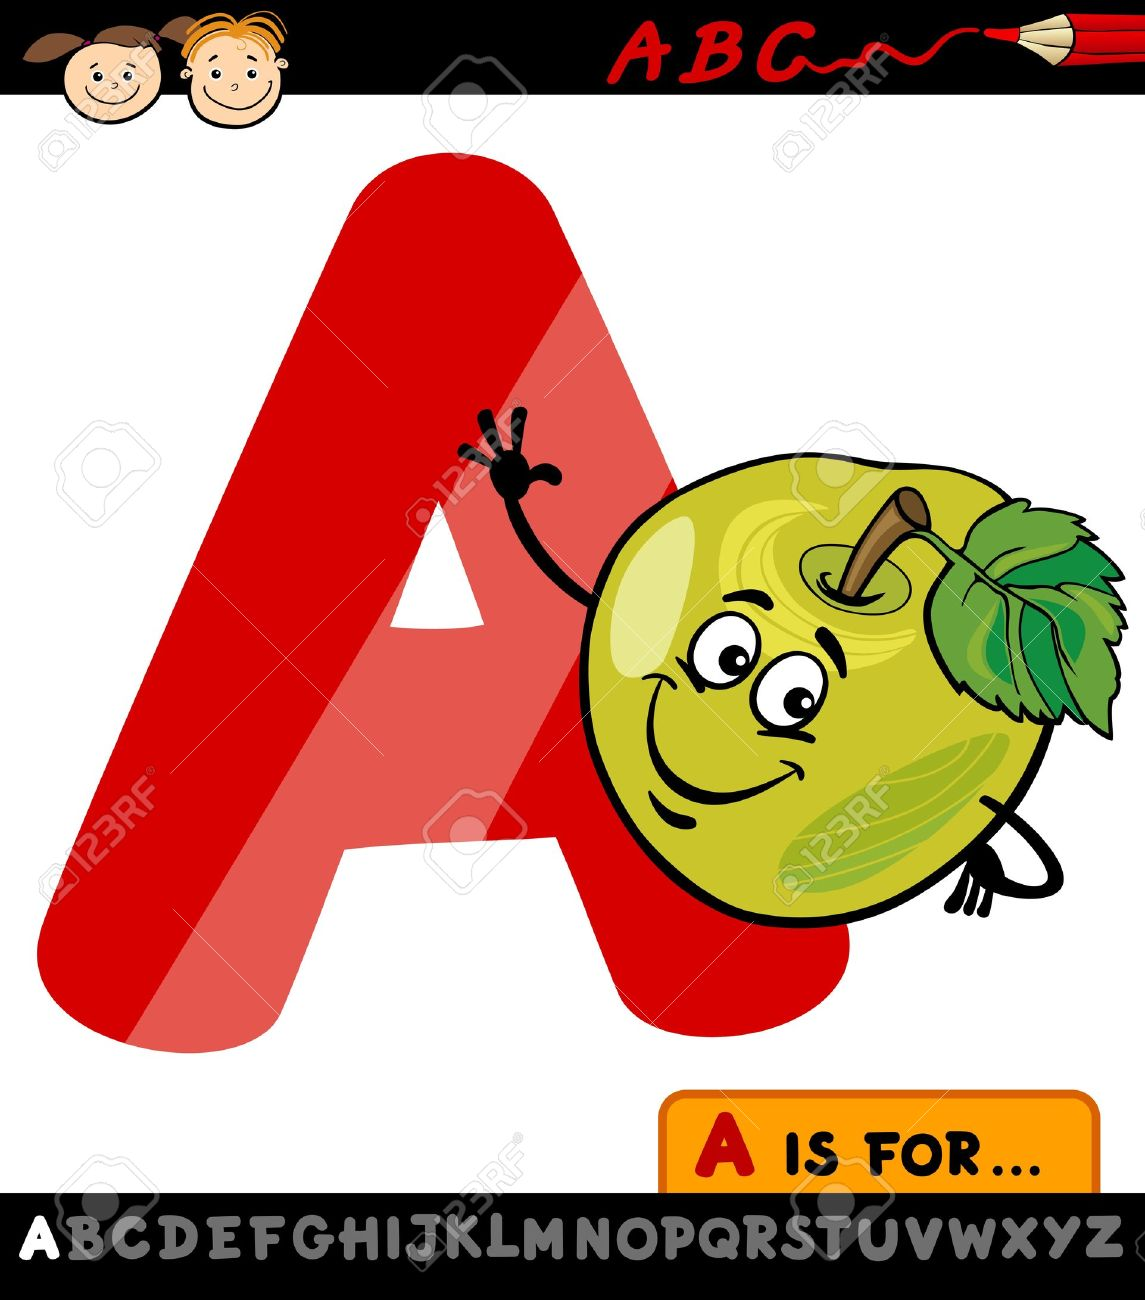 A alphabet letter apple clipart clipart Cartoon Illustration Of Capital Letter A From Alphabet With Apple ... clipart